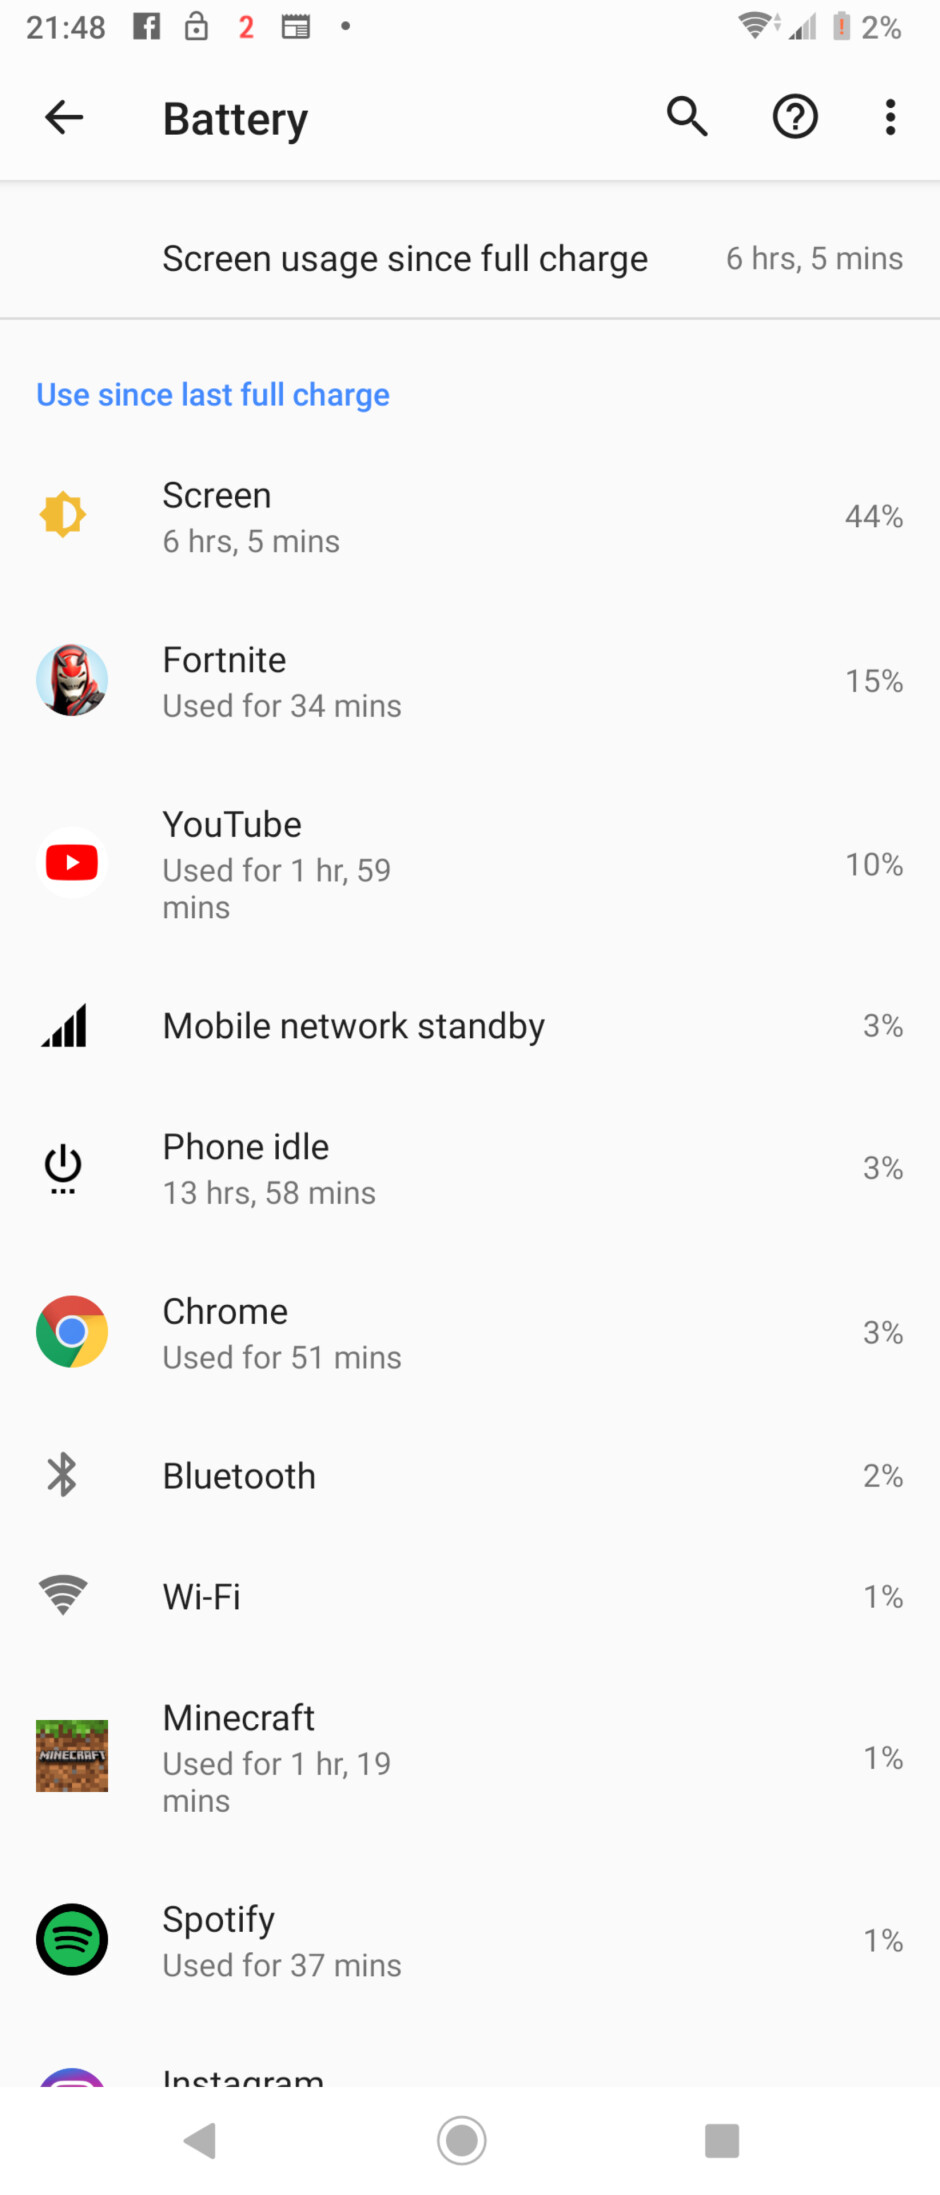 Sony Xperia 1 battery life: real-life impressions and test results are out!